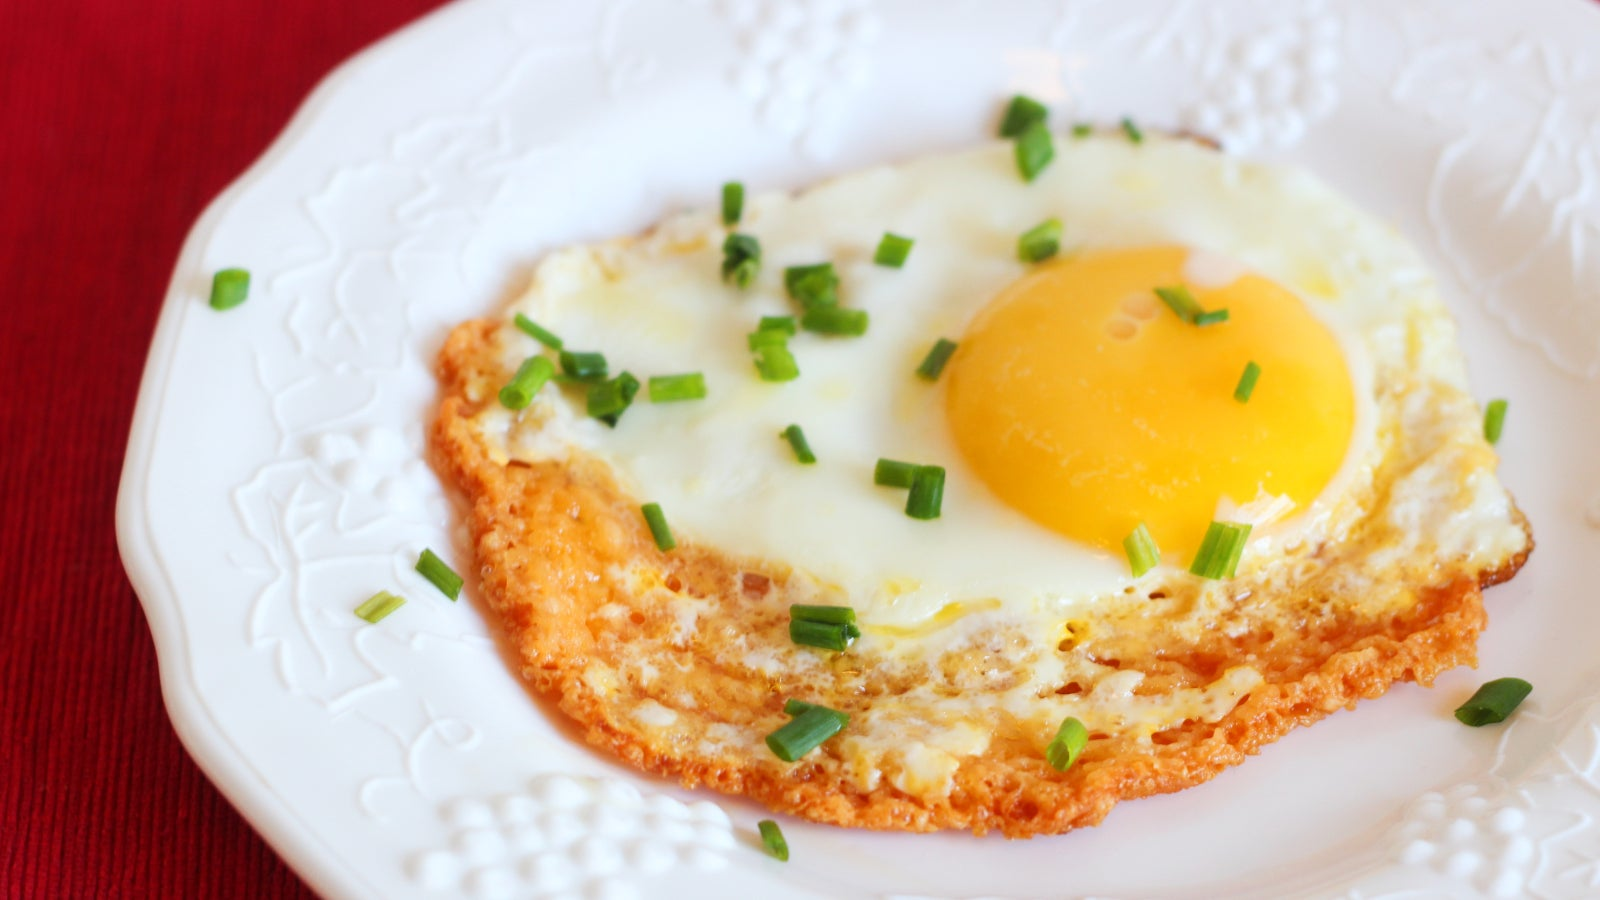 Behold The Cheesy, Crispy Glory Of The Frico Fried Egg